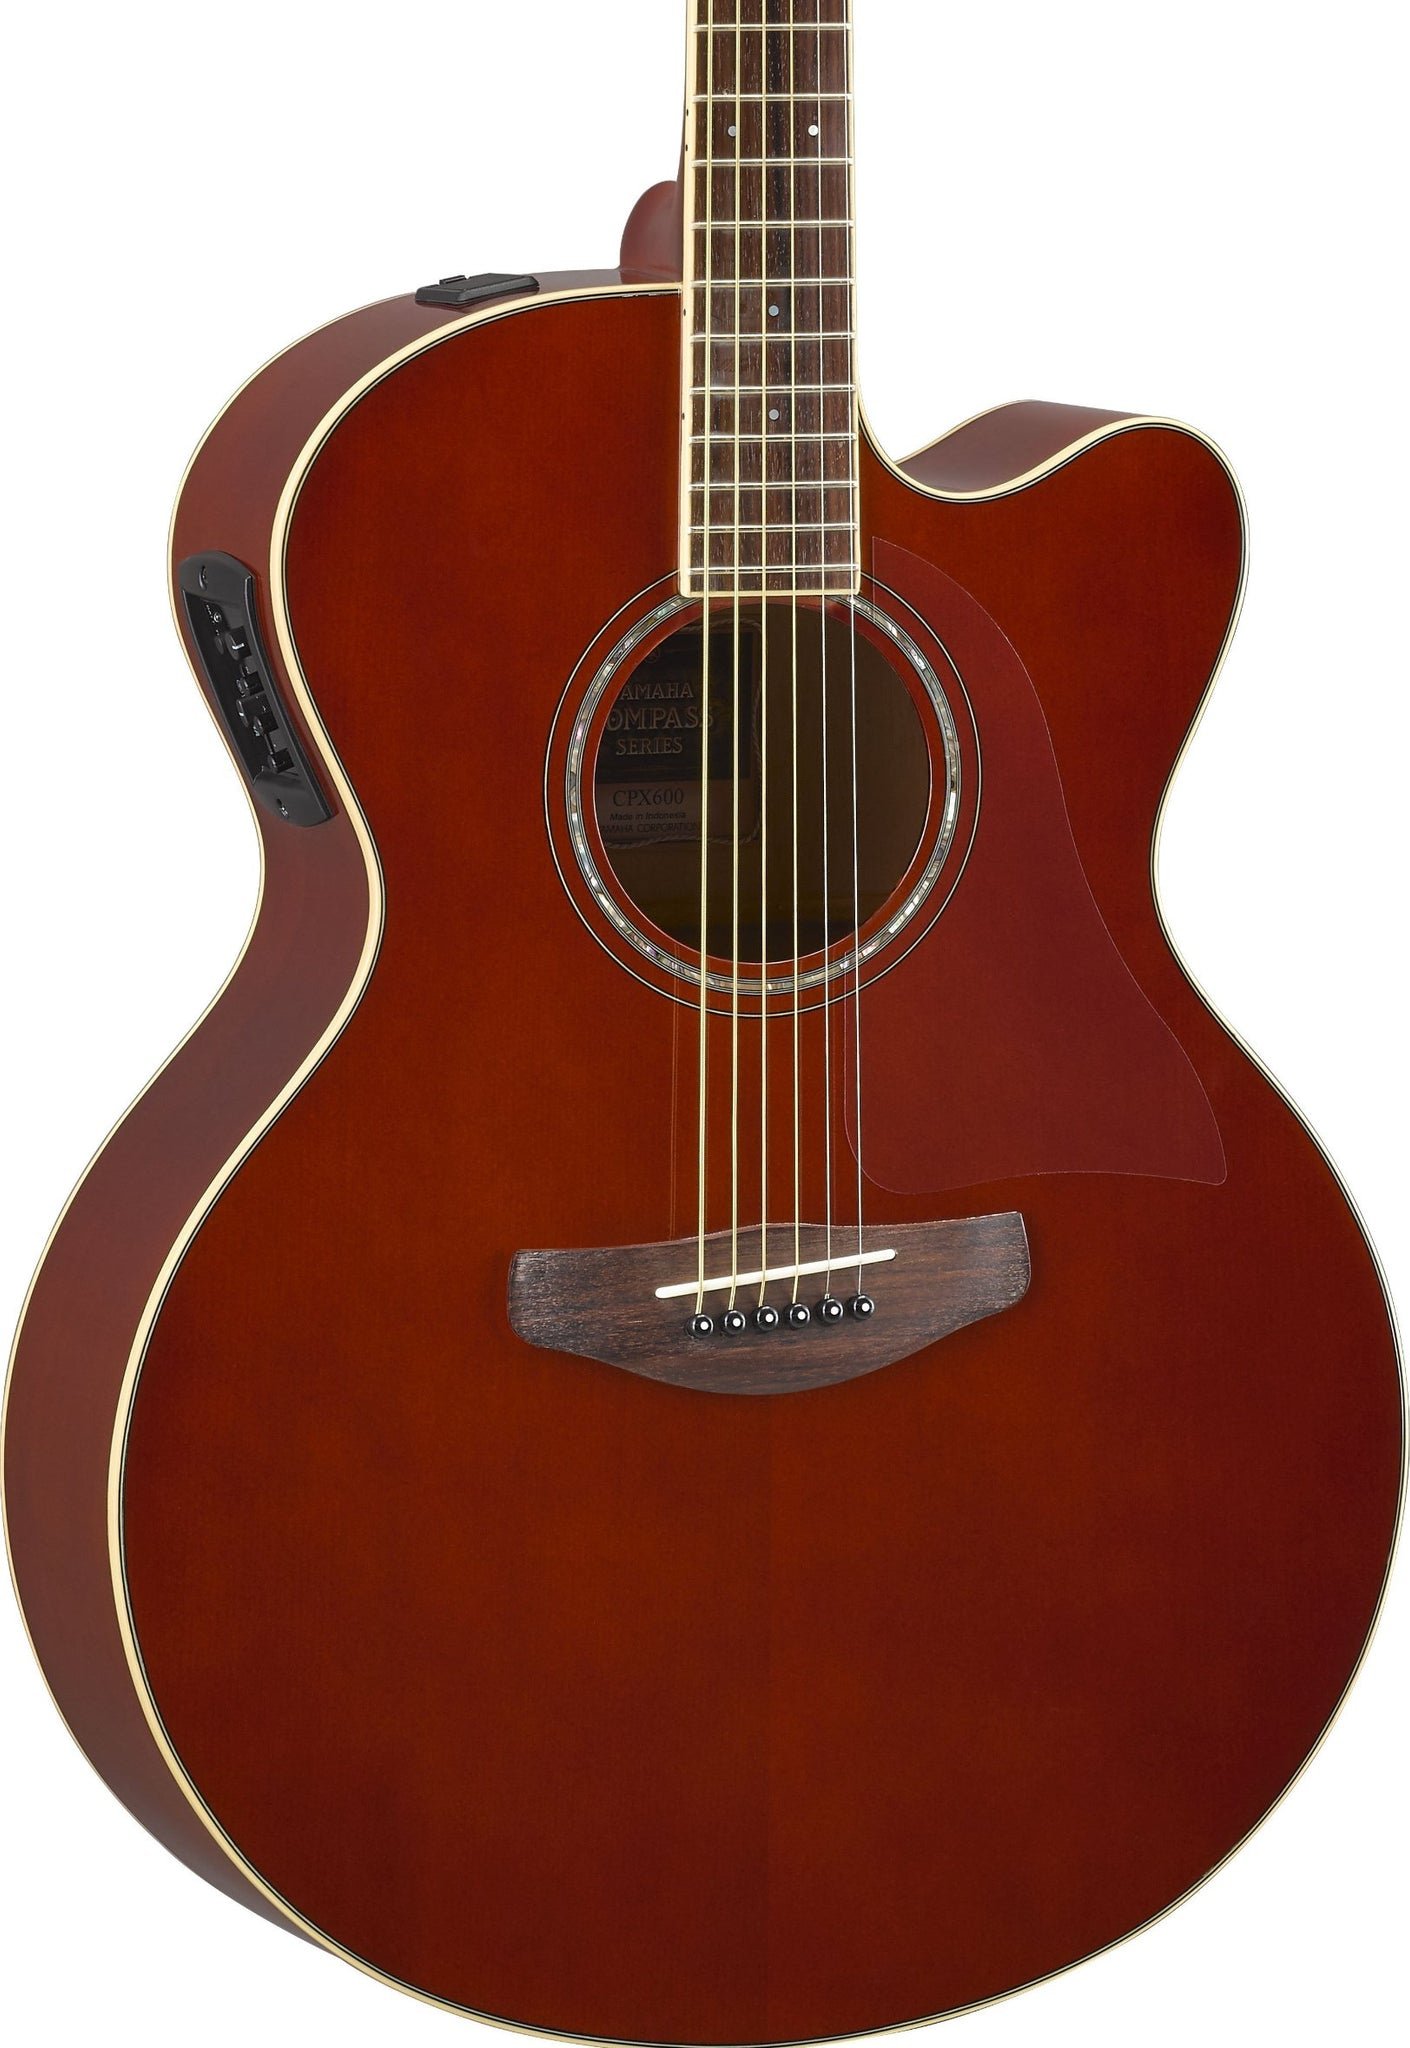 YAMAHA CPX600 - ACOUSTIC GUITAR WITH PICKUP ROOT BEER